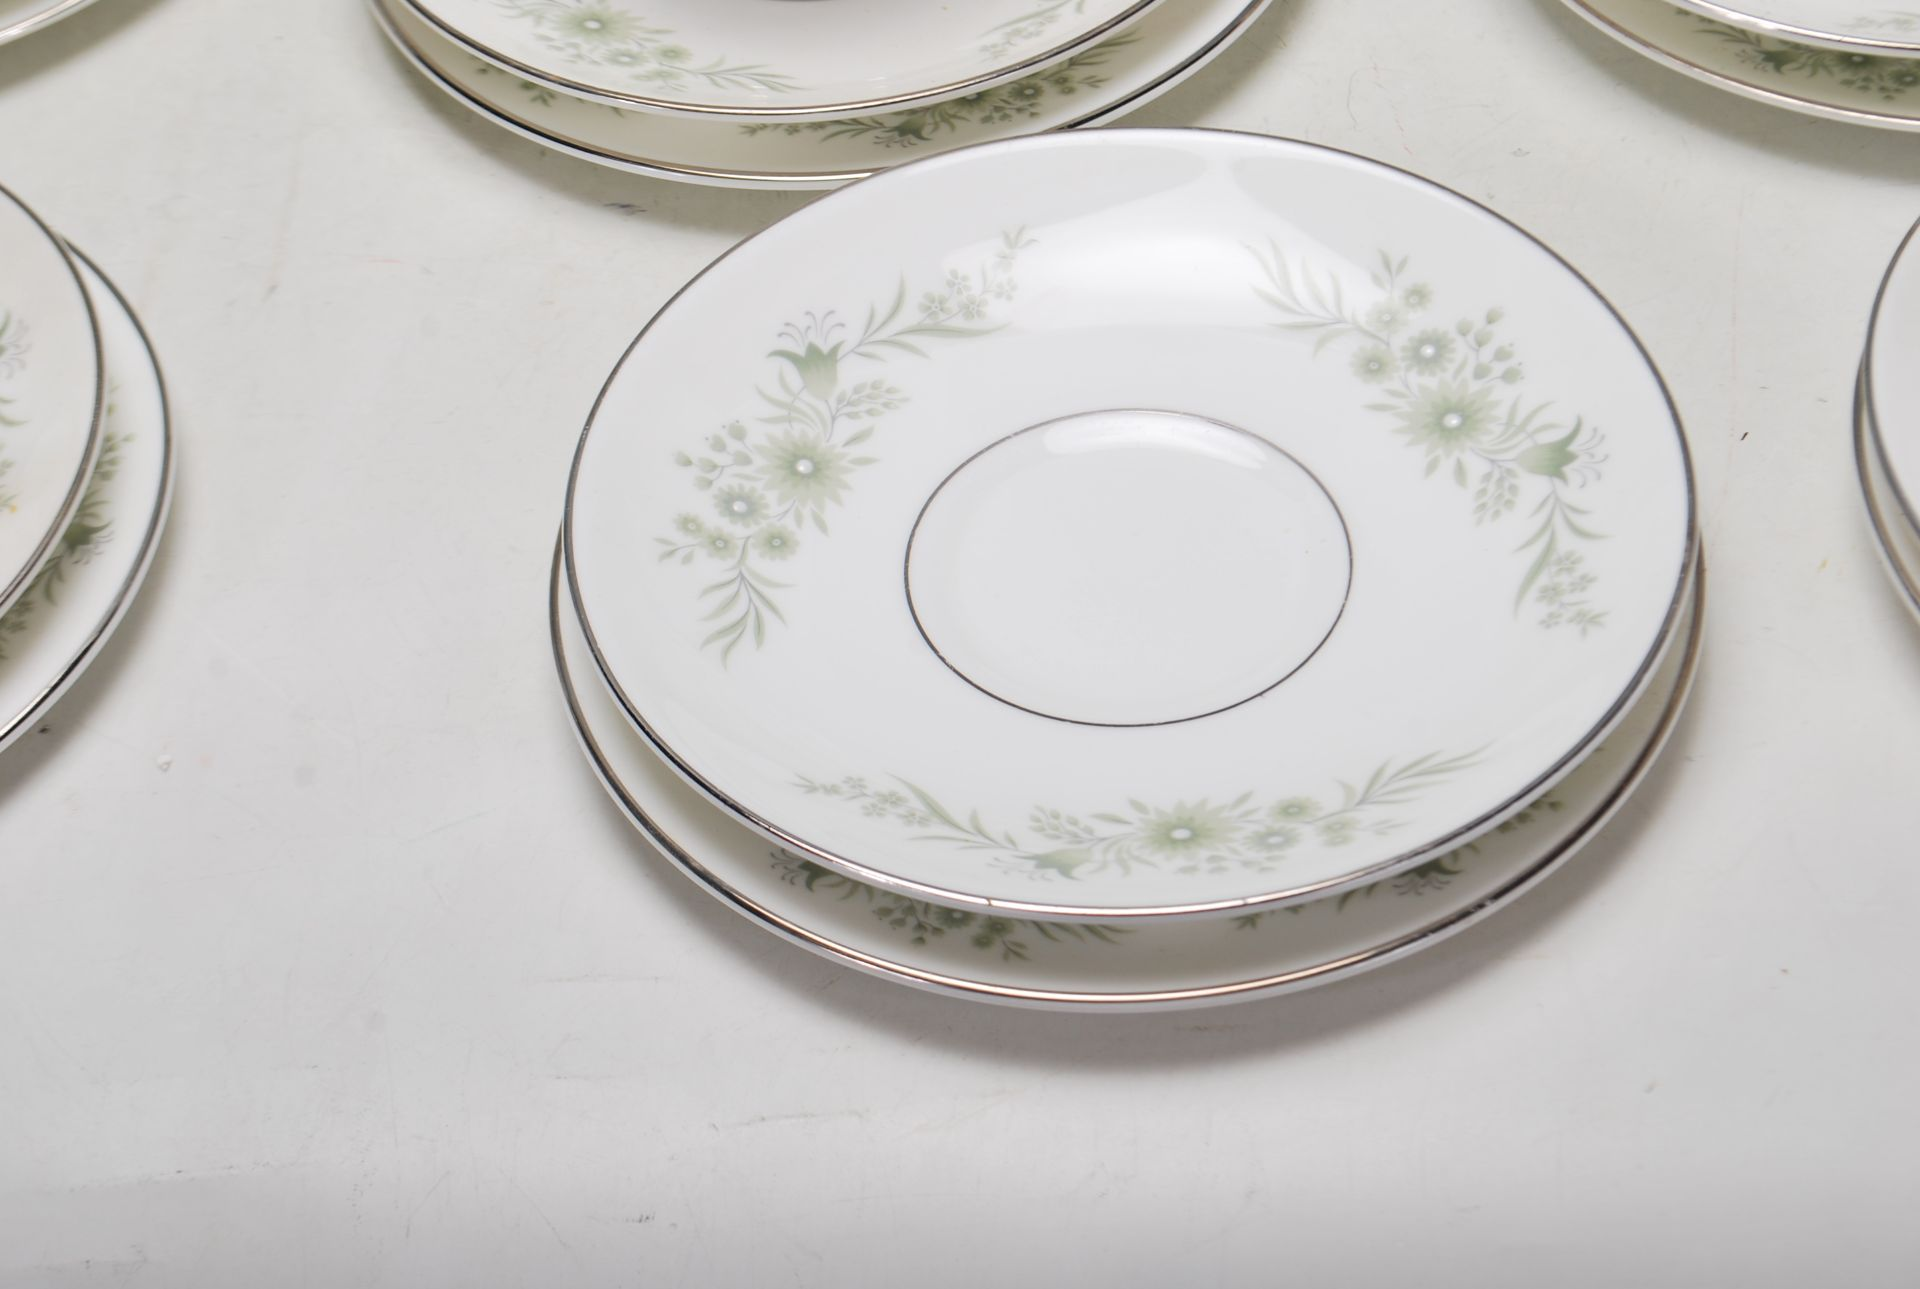 COLLECTION OF LATE 20TH CENTURY WEDGWOOD FINE BONE CHINA - Image 3 of 9